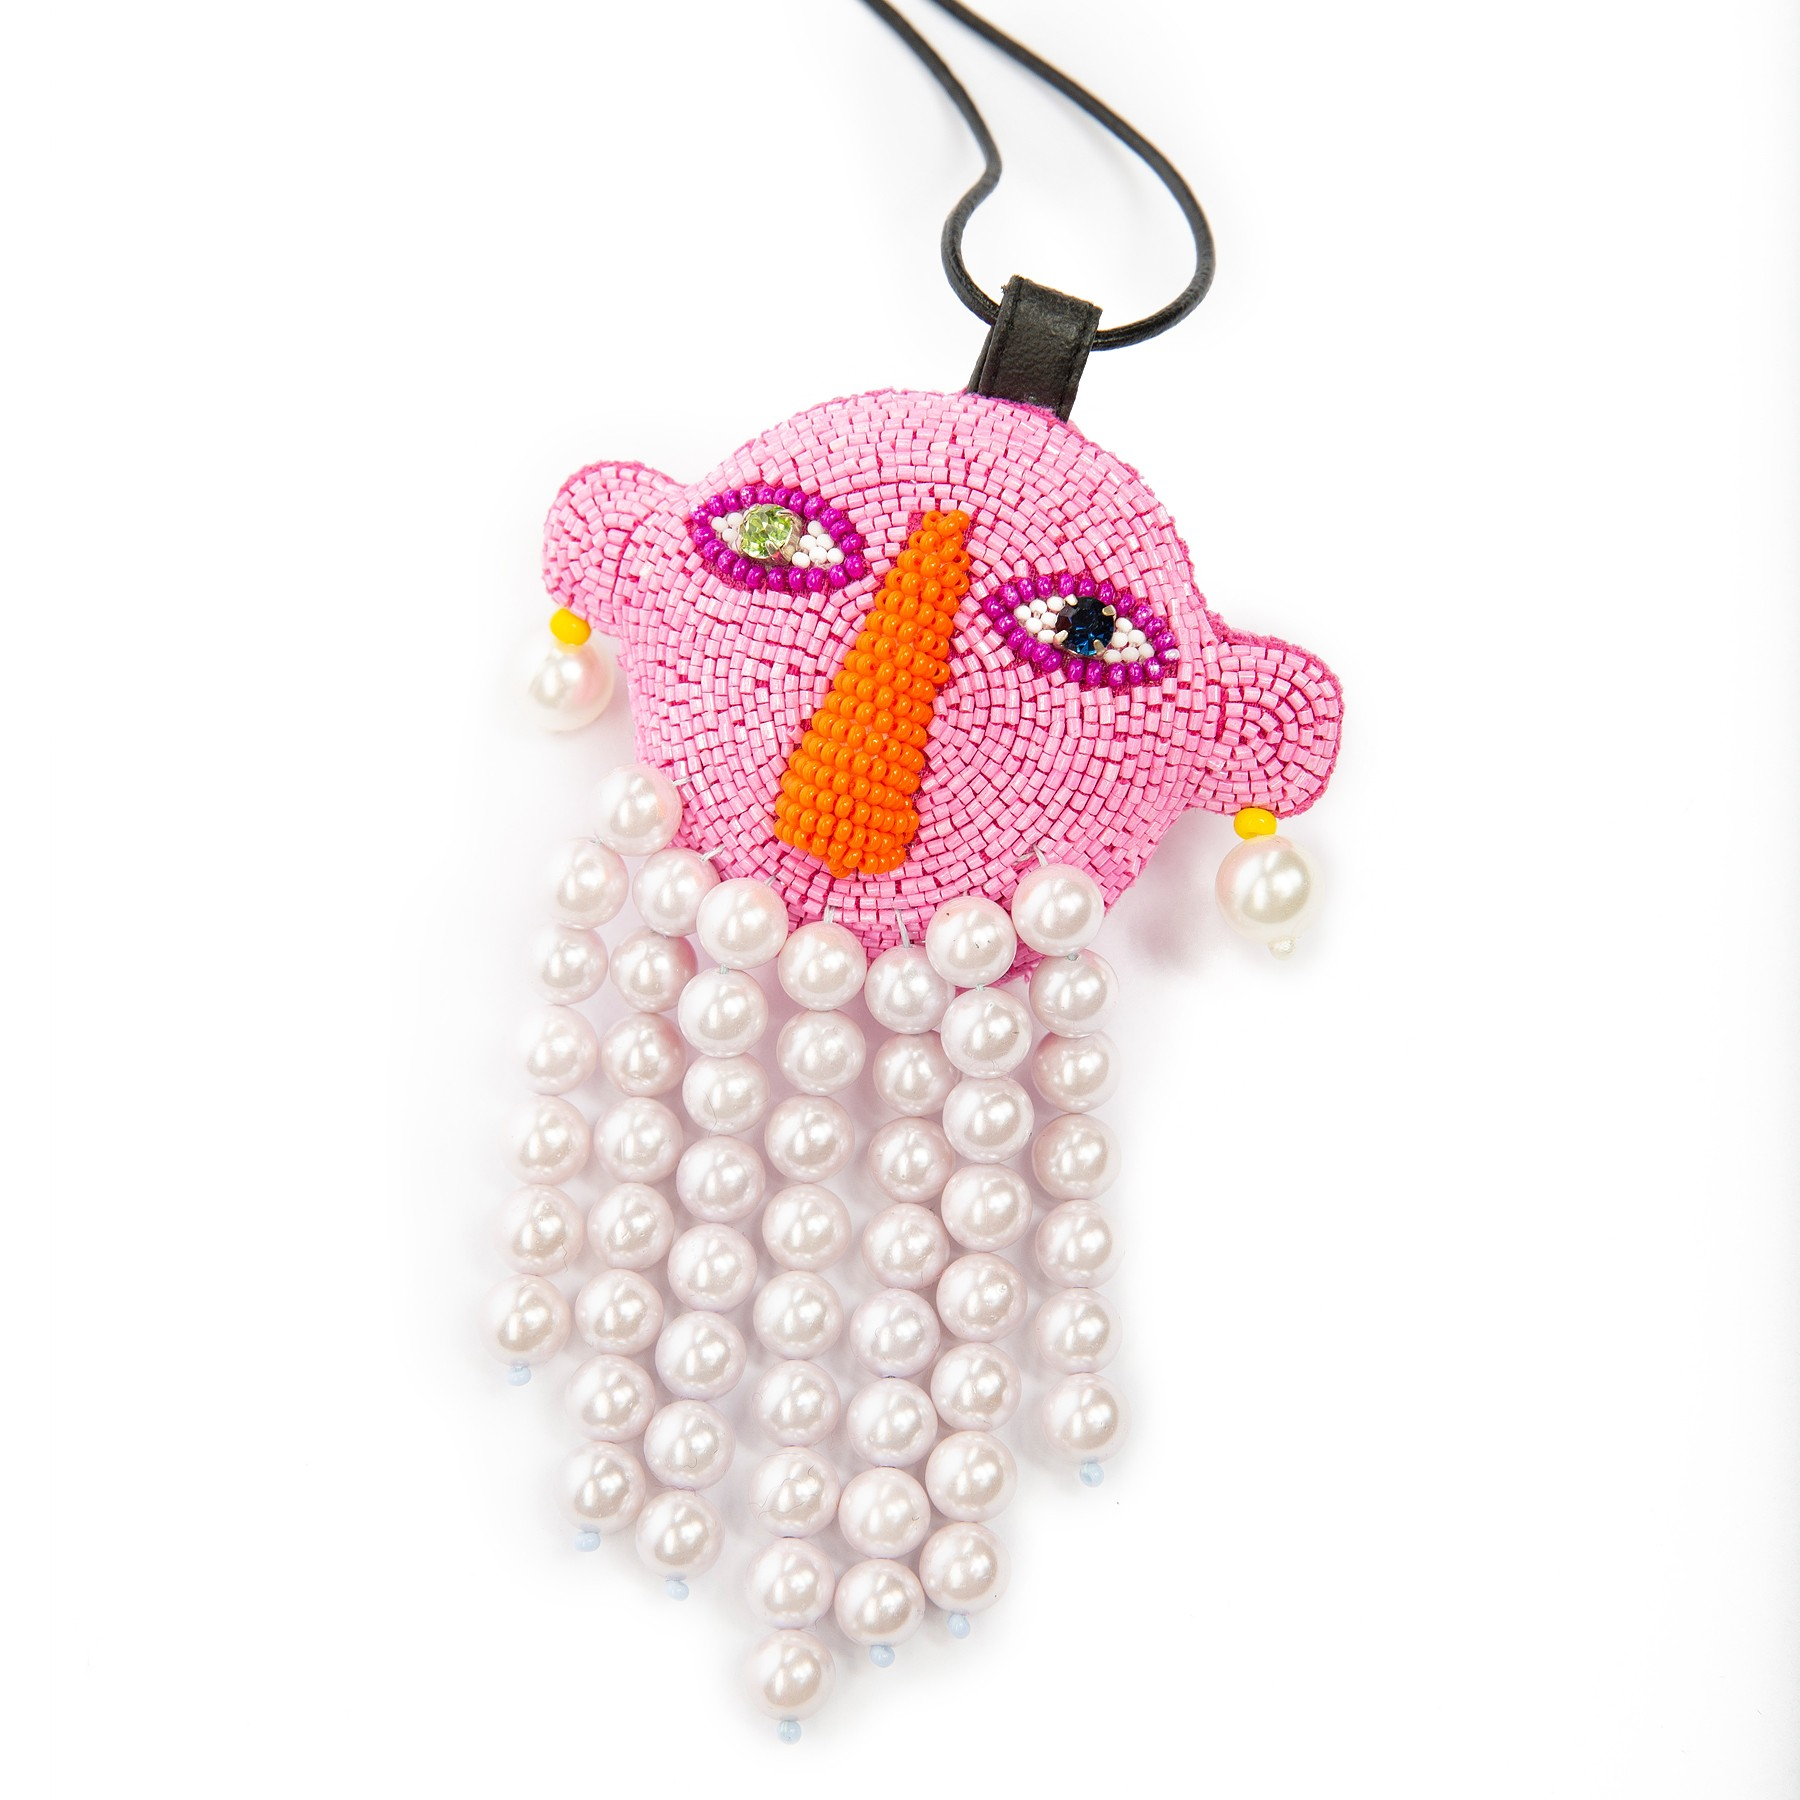 WALTER VAN BEIRENDONCK - WALTER VAN BEIRENDONCK BEARD NECKLACE